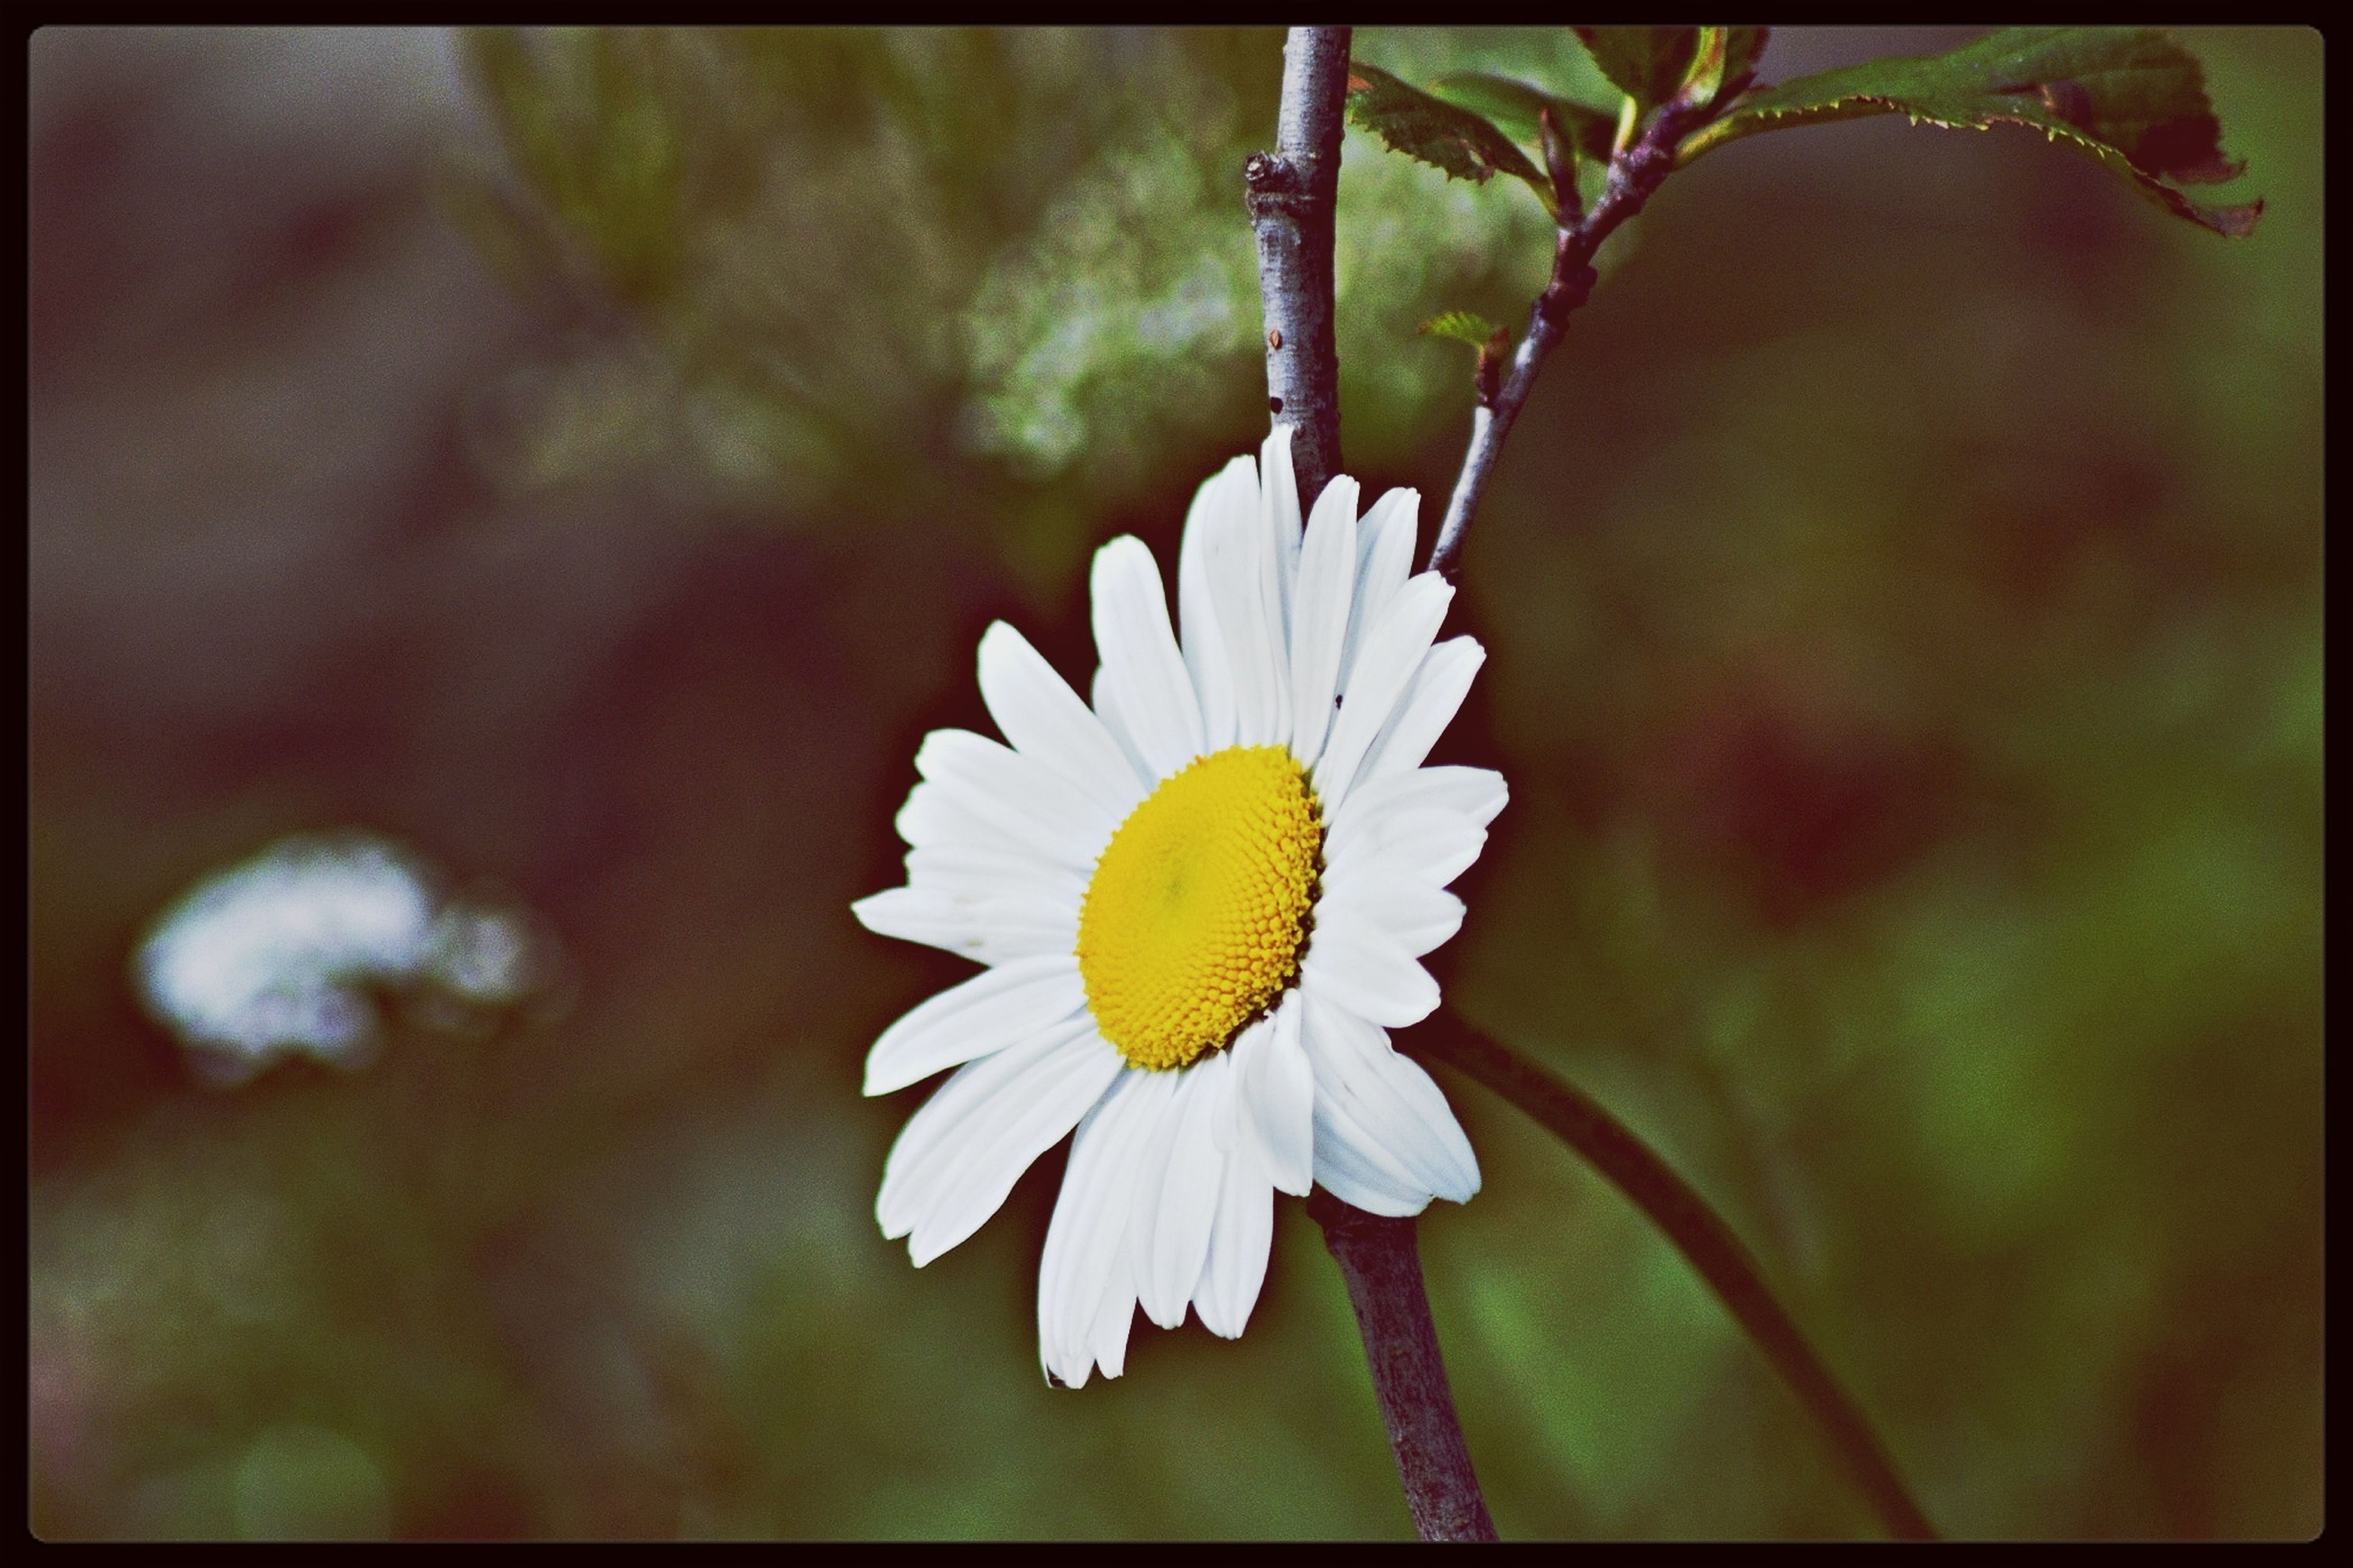 flower, petal, flower head, freshness, fragility, transfer print, growth, close-up, beauty in nature, single flower, focus on foreground, blooming, auto post production filter, white color, nature, plant, pollen, in bloom, blossom, selective focus